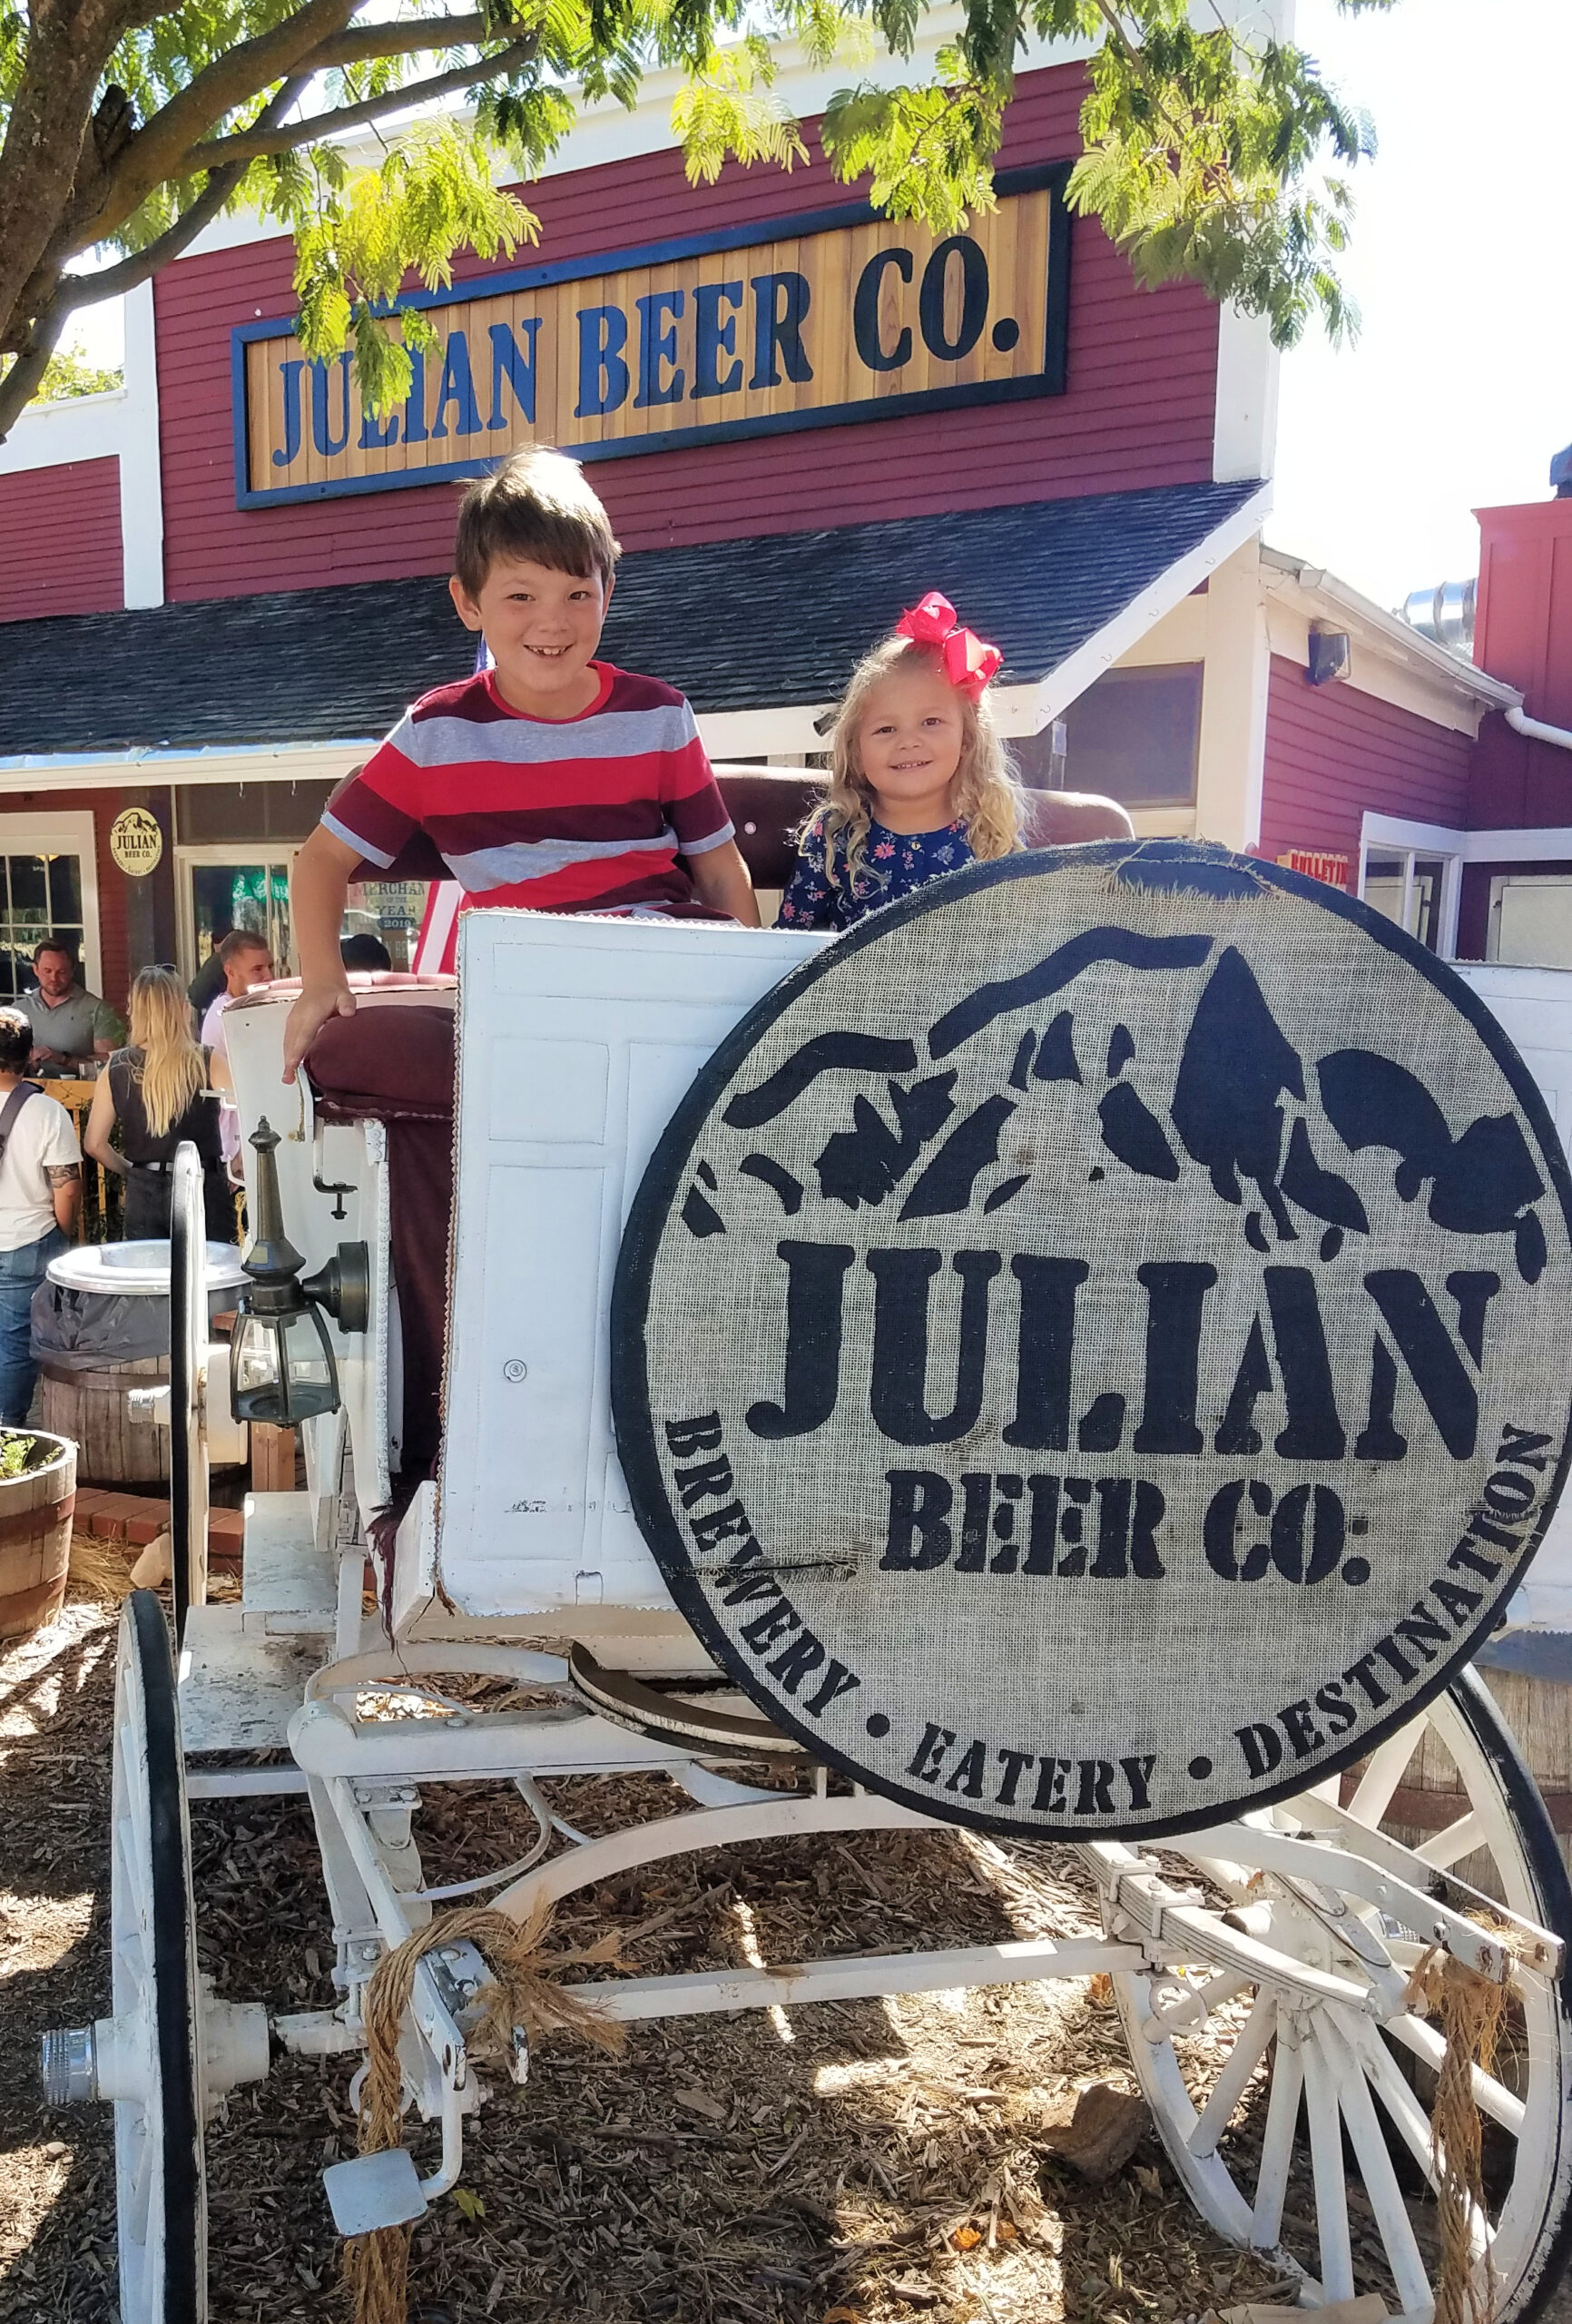 Young boy and girl in wooden wagon at the Julian Beer Co. near San Diego